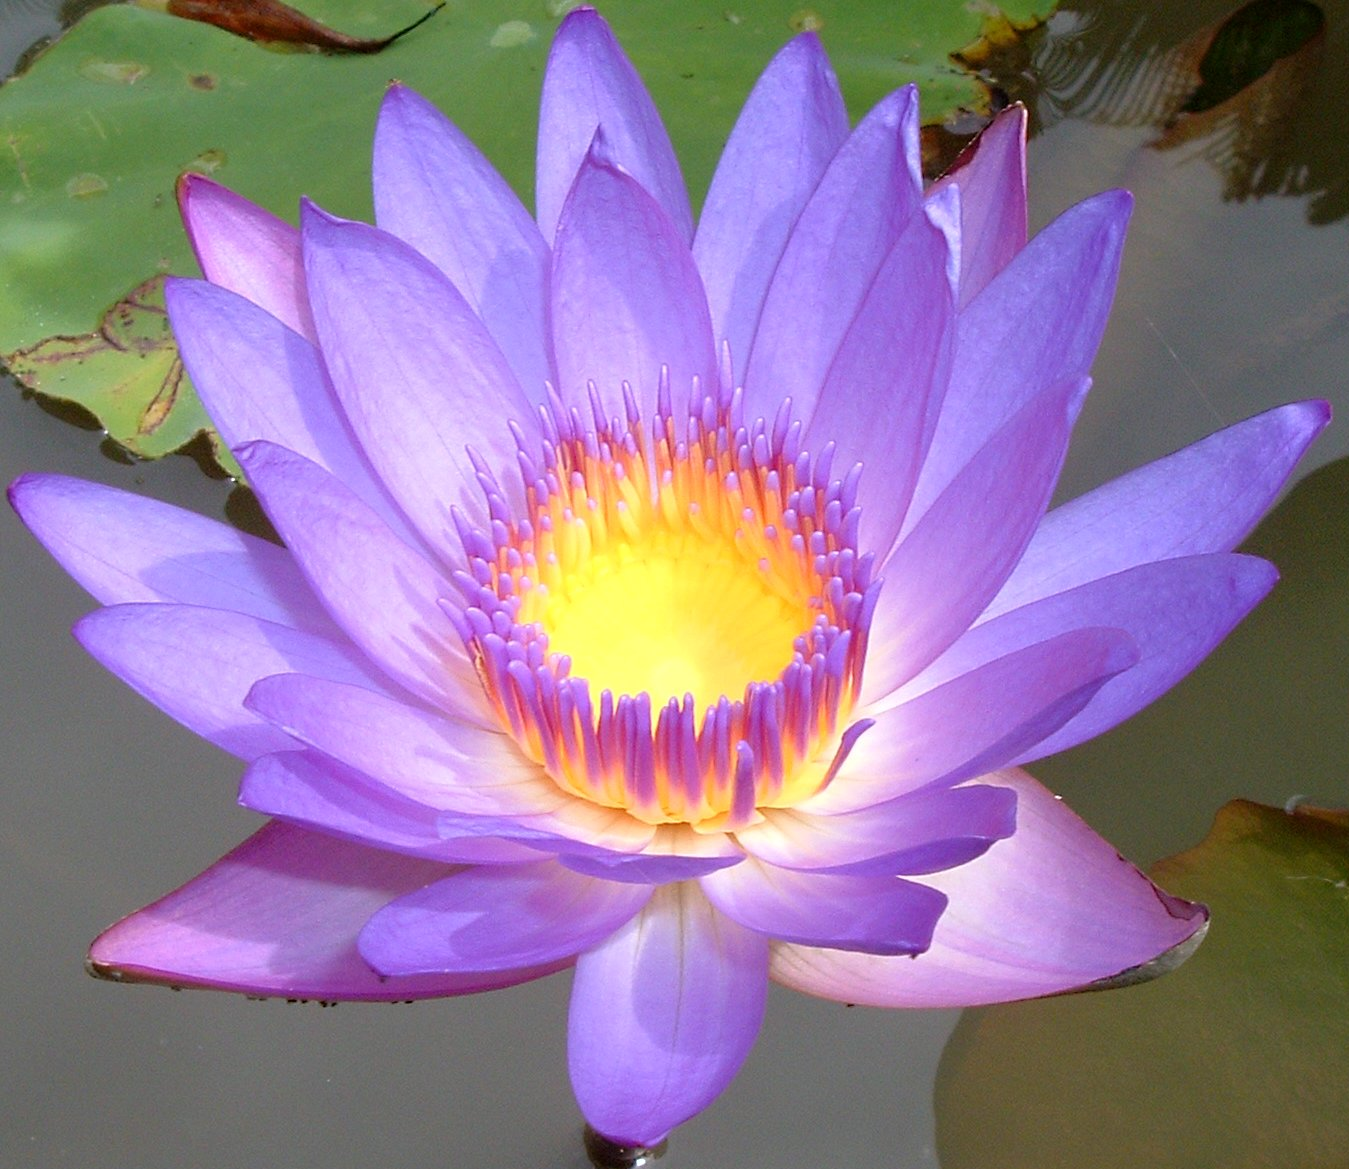 The Lotus Flower | Goddess Diaries